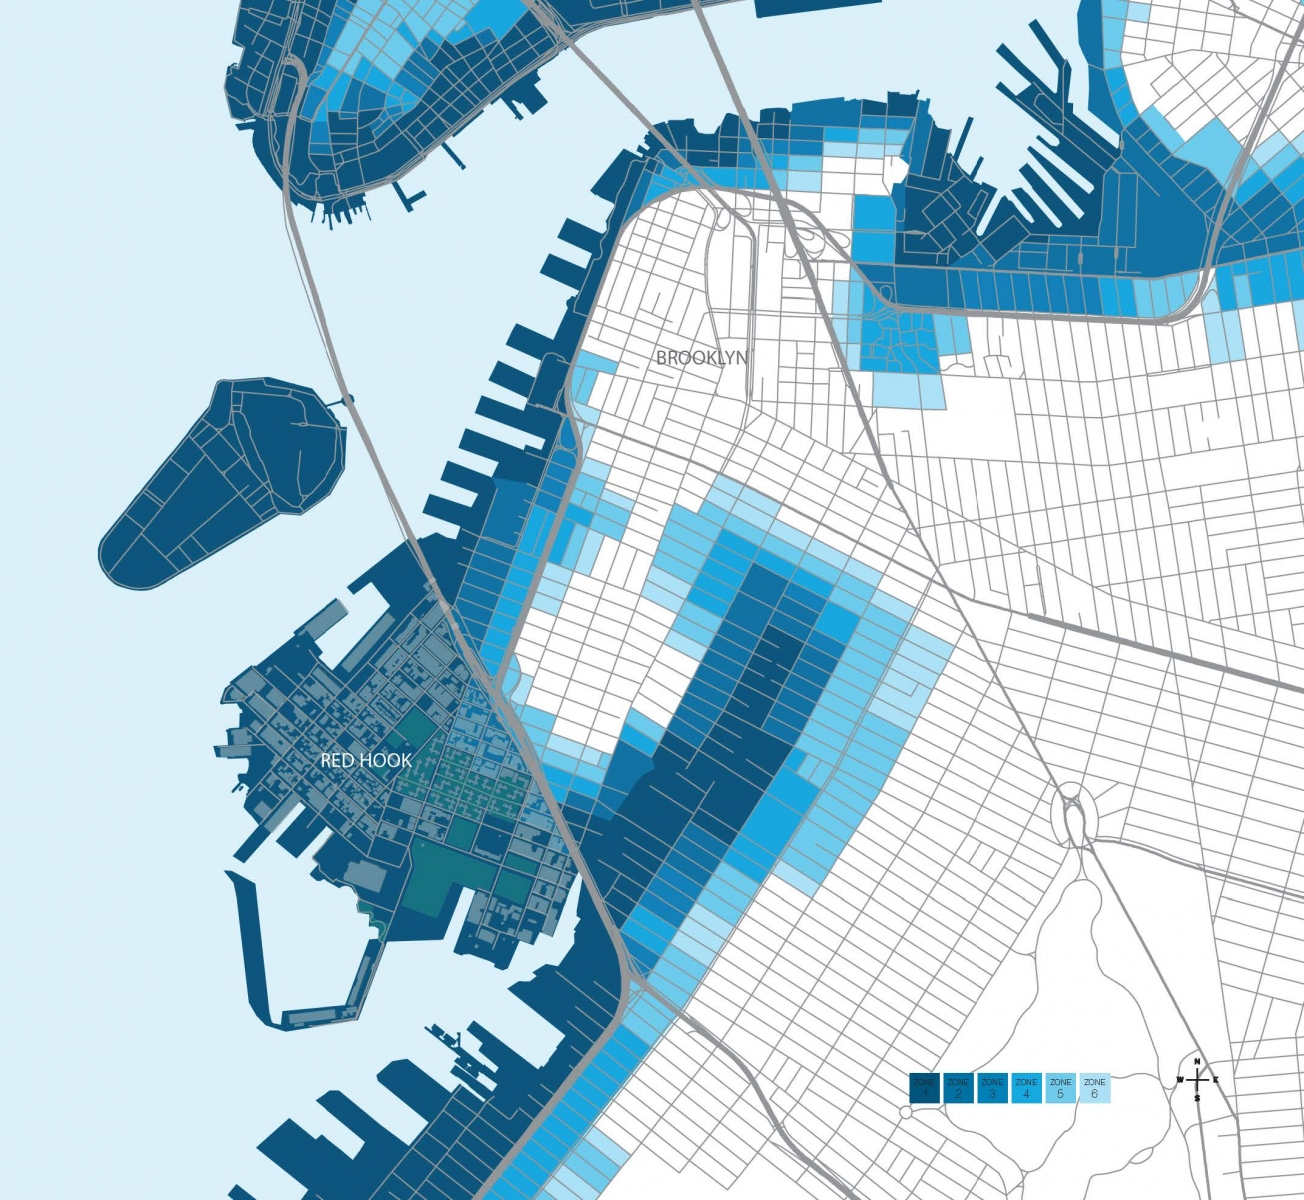 2016_BASF_RedHook_WhitePaper_Map_Brooklyn Flood Zones